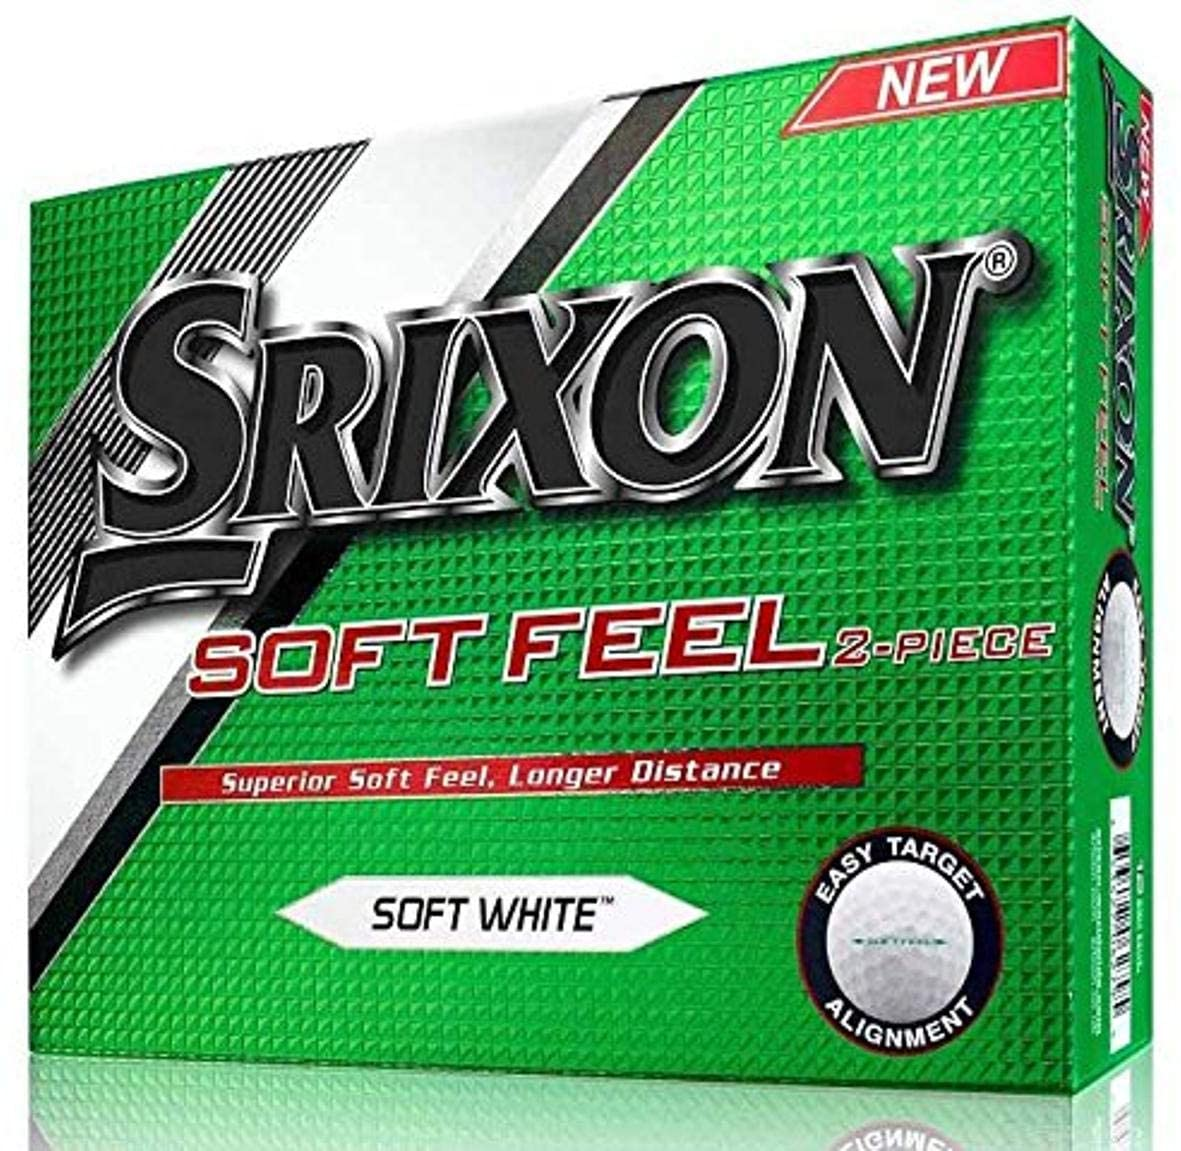 Best golf balls for mid handicappers Srixon Men's Soft Feel